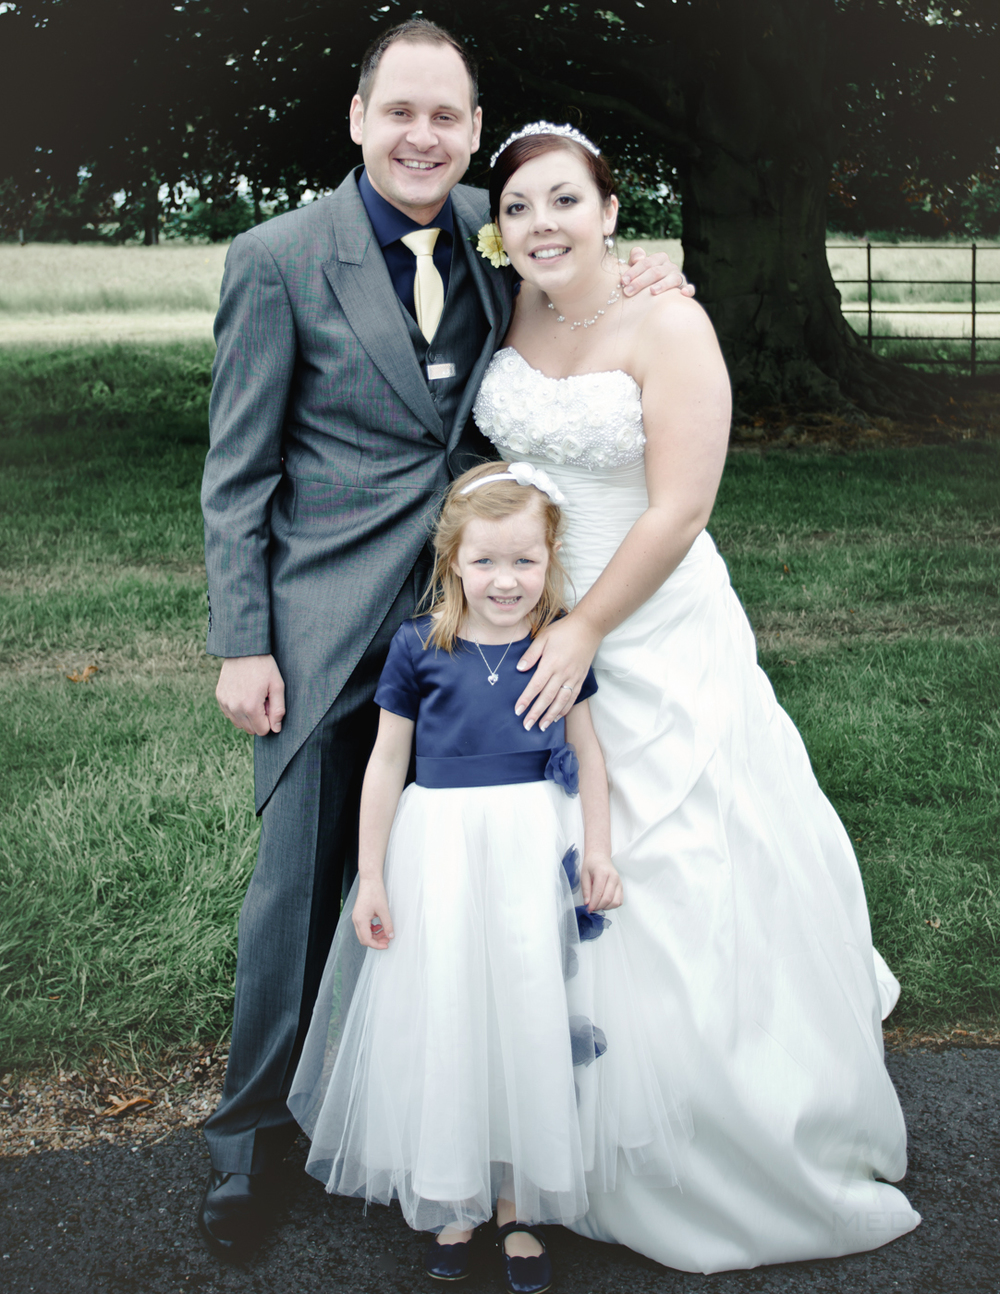 357 - Chris and Natalies Wedding (MAIN) - DO NOT SHARE THIS IMAGES ONLINE -0678.JPG